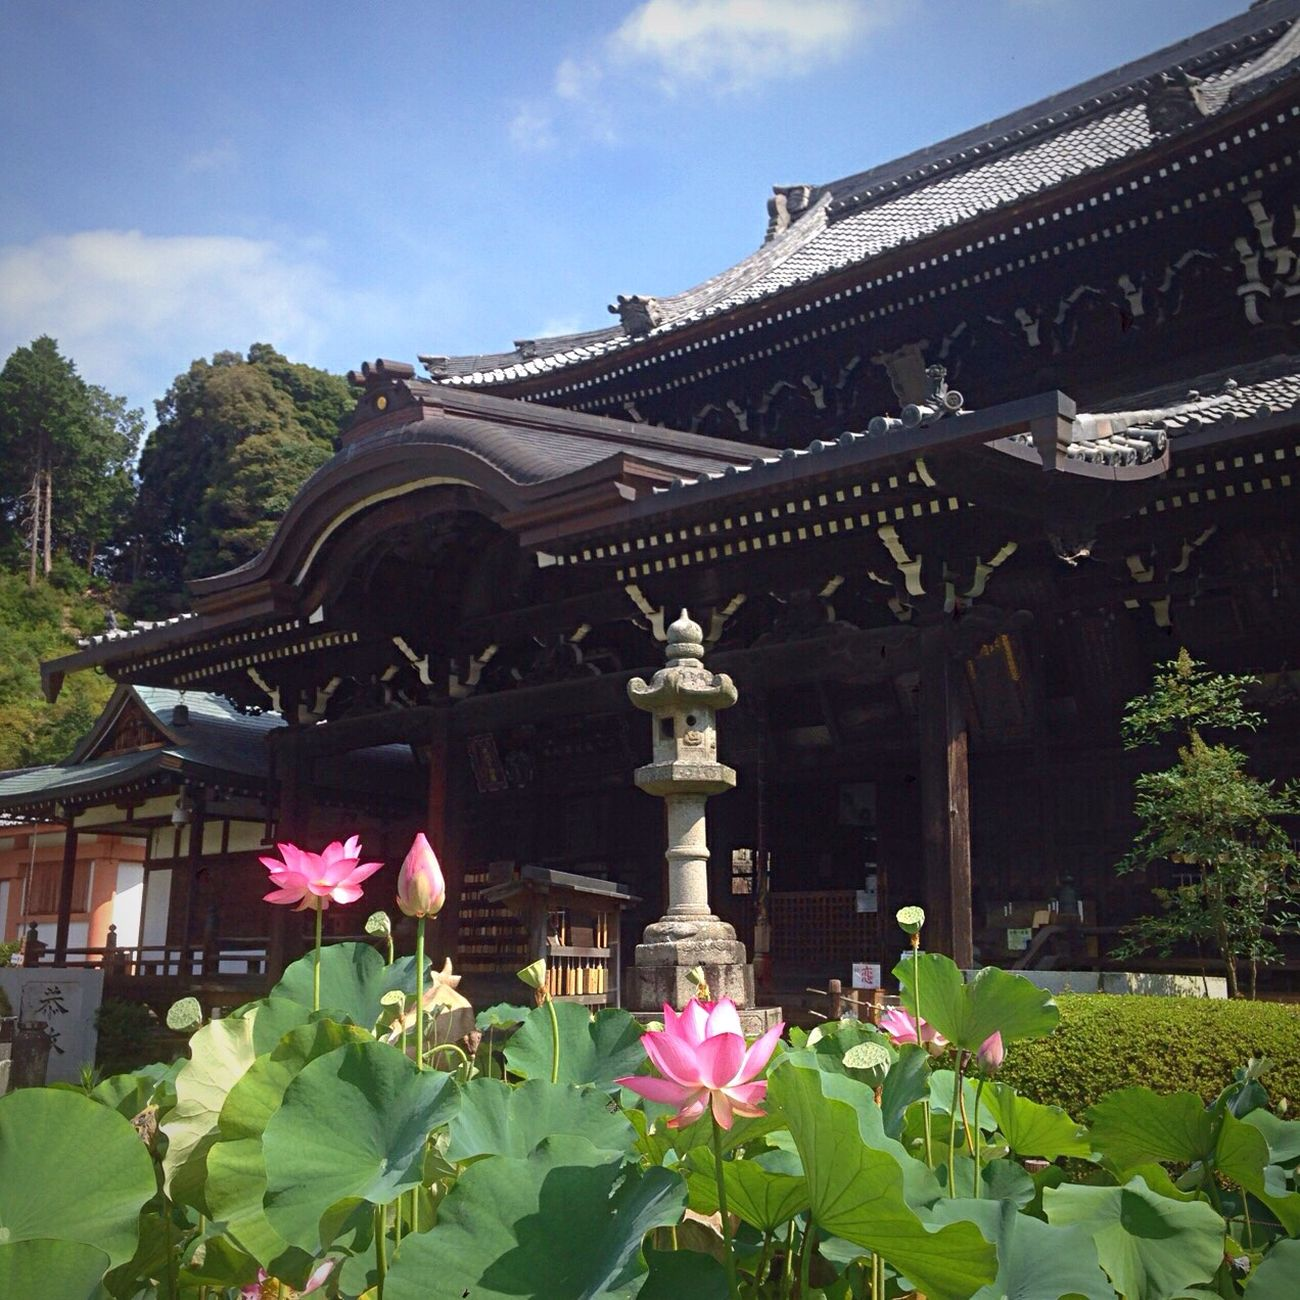 Kyoto Japan Uji Mimurotoji Lotus Flower Now Temple Summer 京都 日本 宇治 三室戸寺 蓮 夏 今